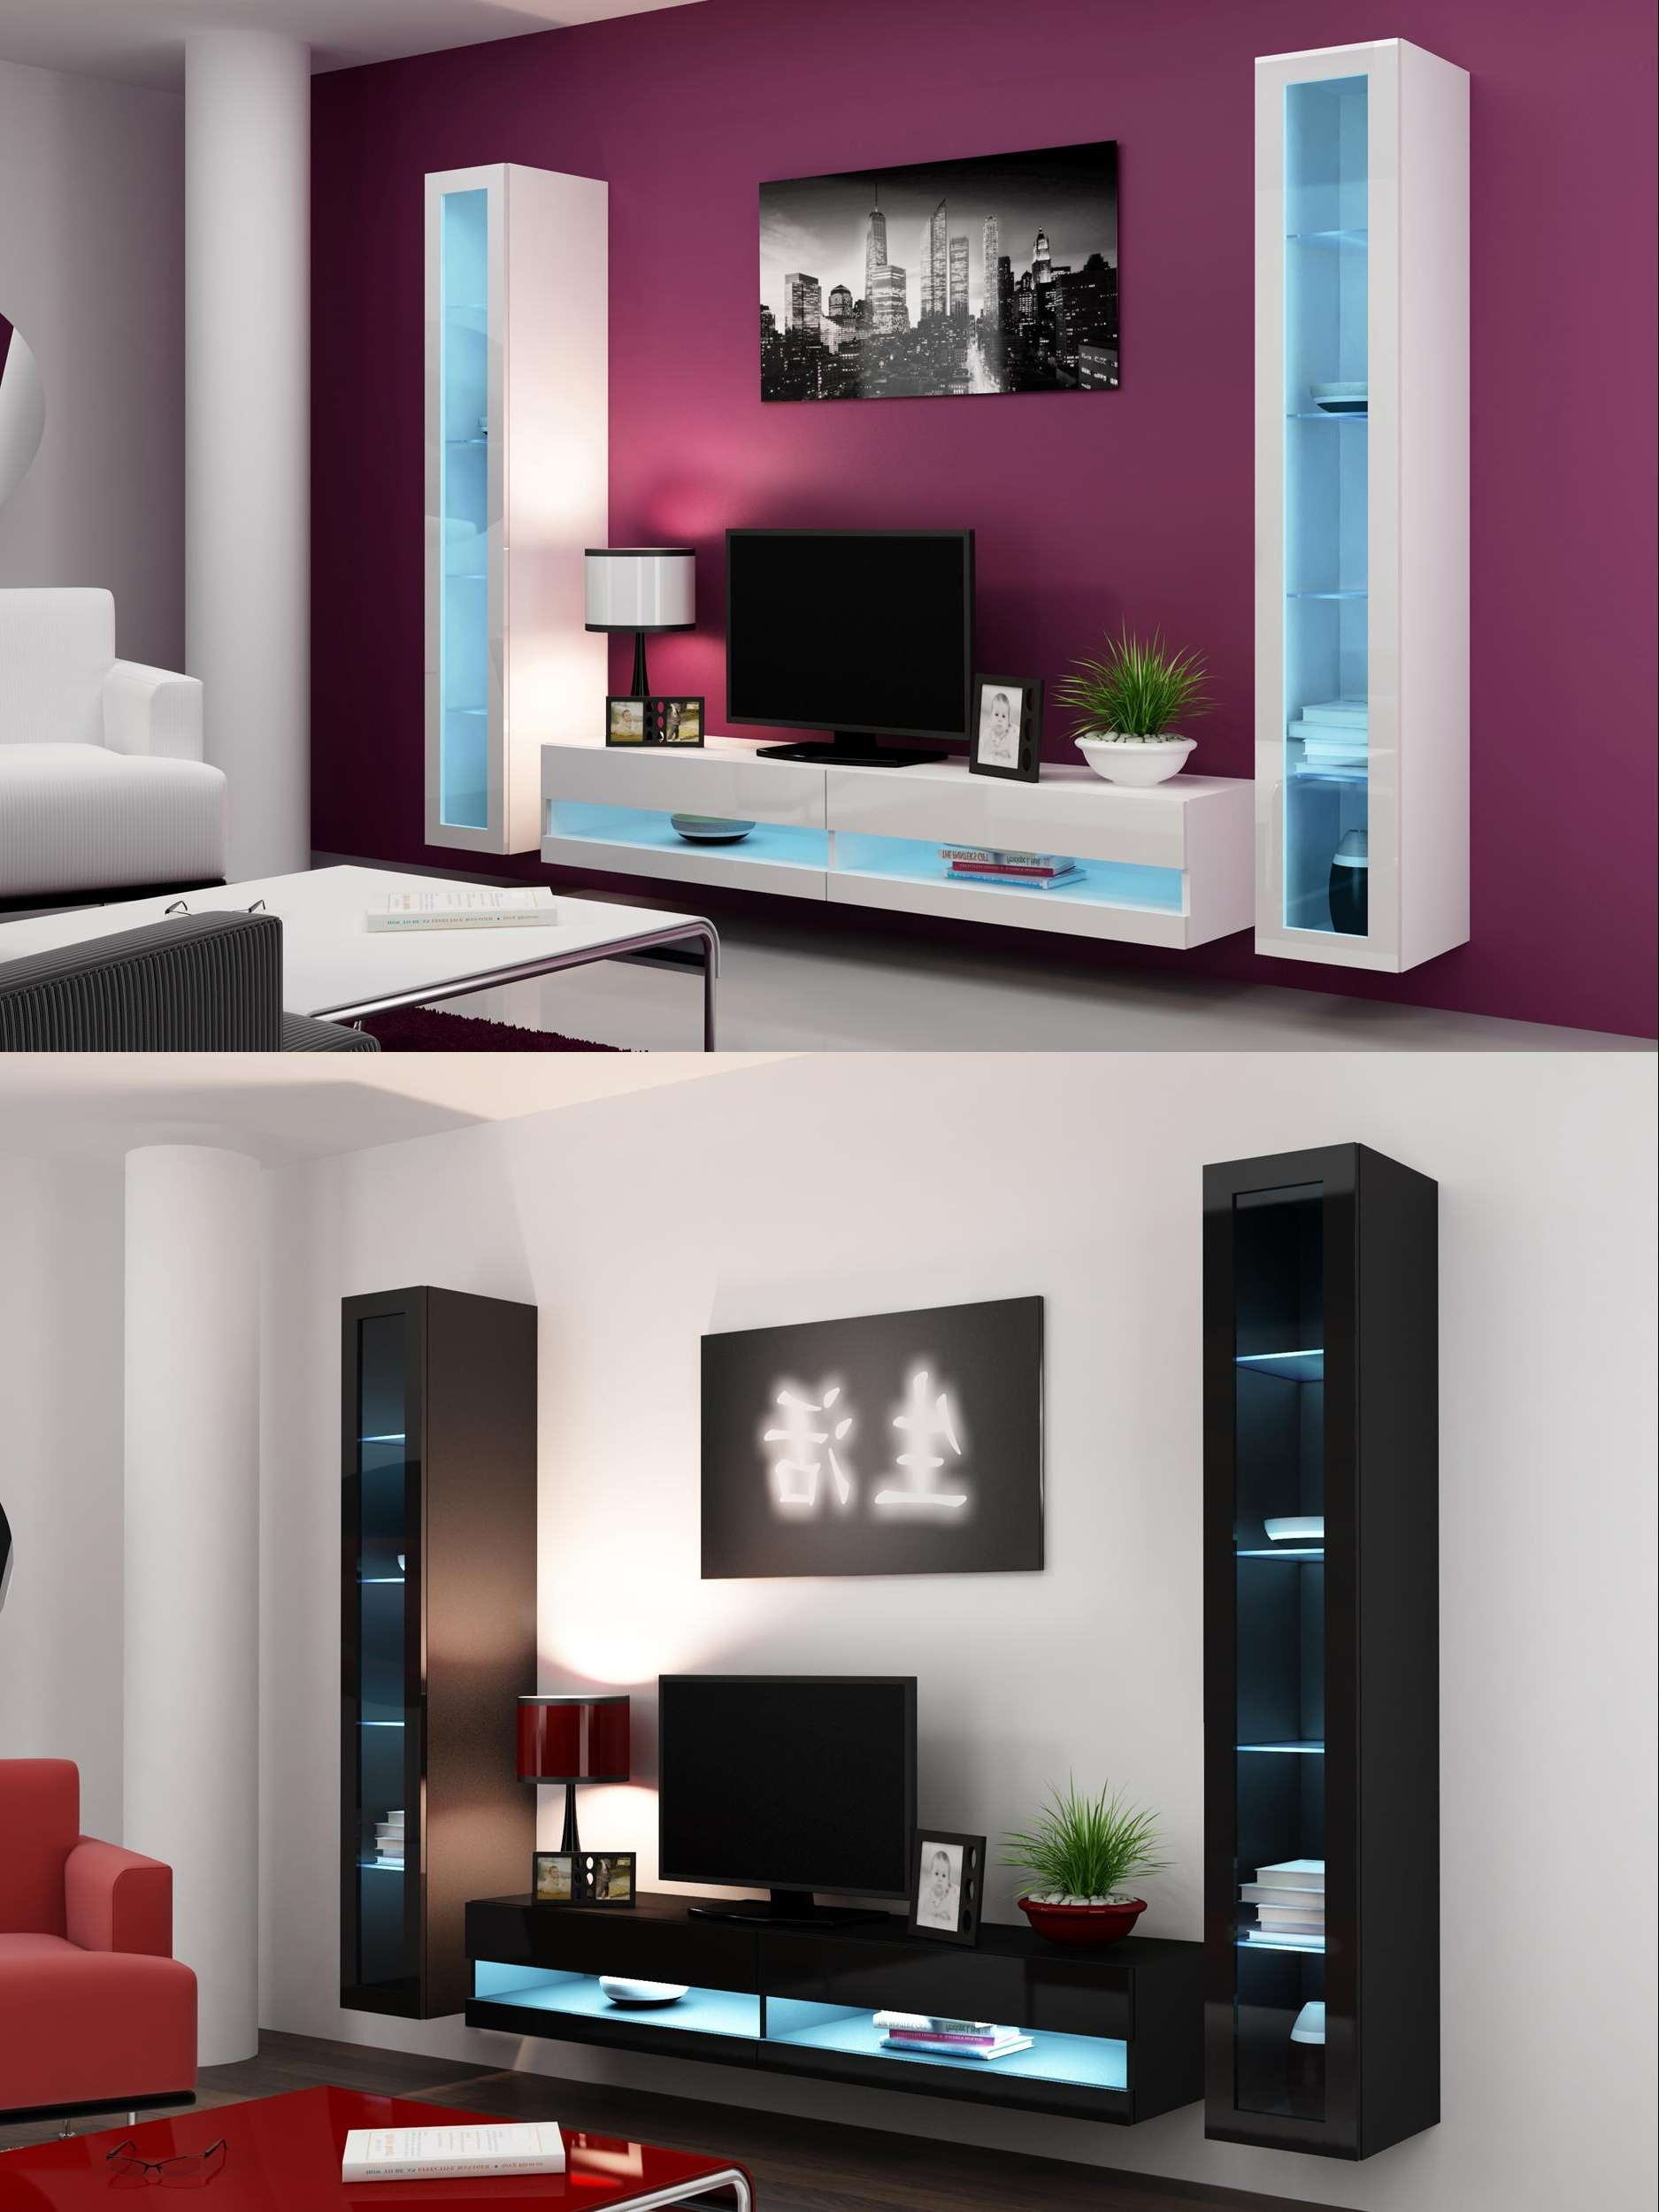 High Gloss Living Room Set With Led Lights, Tv Stand, Wall Mounted Regarding Tv Stands With Led Lights (View 5 of 15)